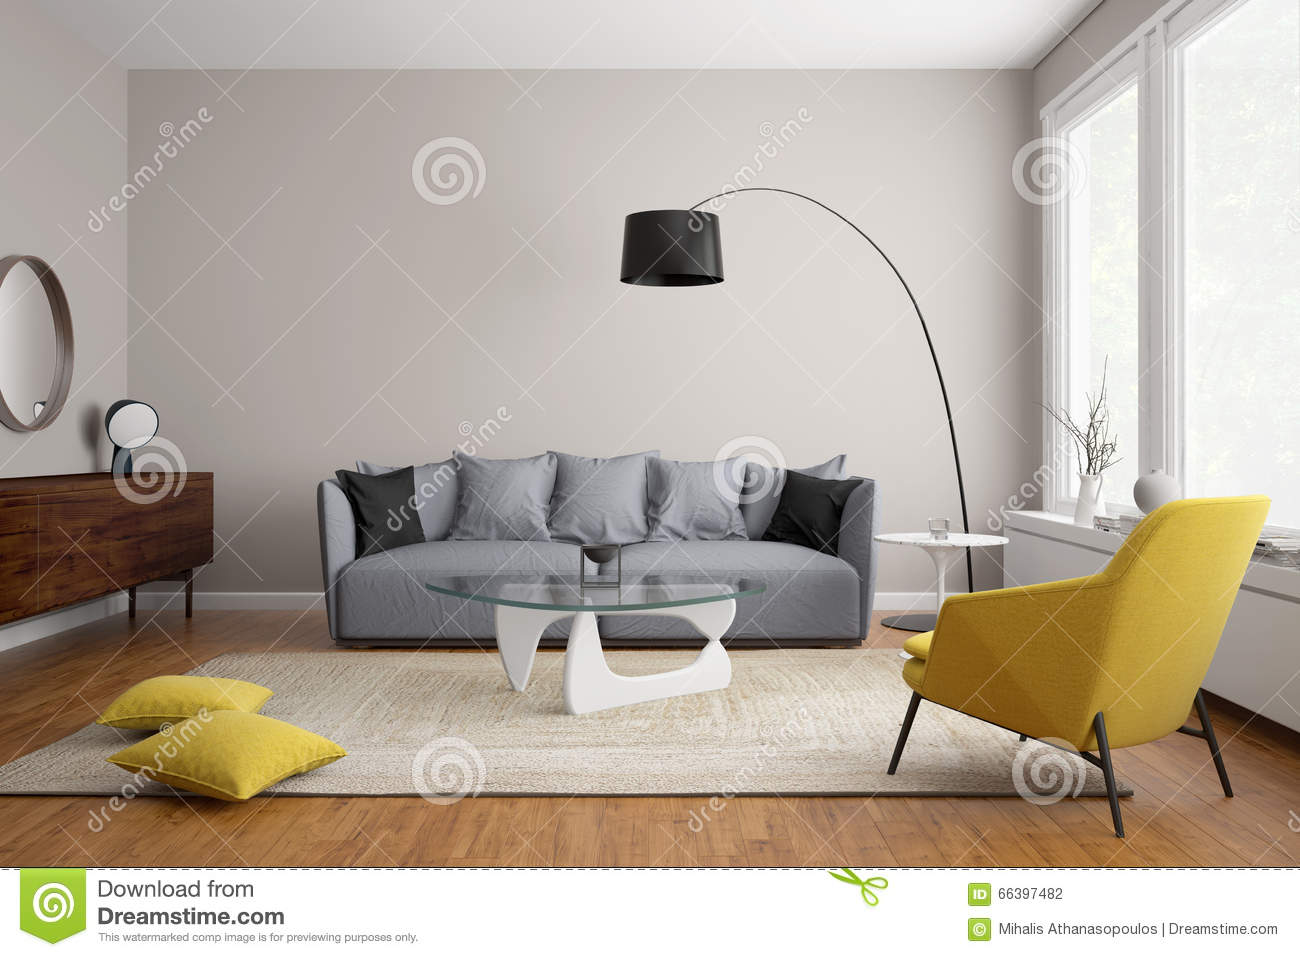 salon scandinave moderne avec le sofa gris illustration stock illustration du lumi re. Black Bedroom Furniture Sets. Home Design Ideas